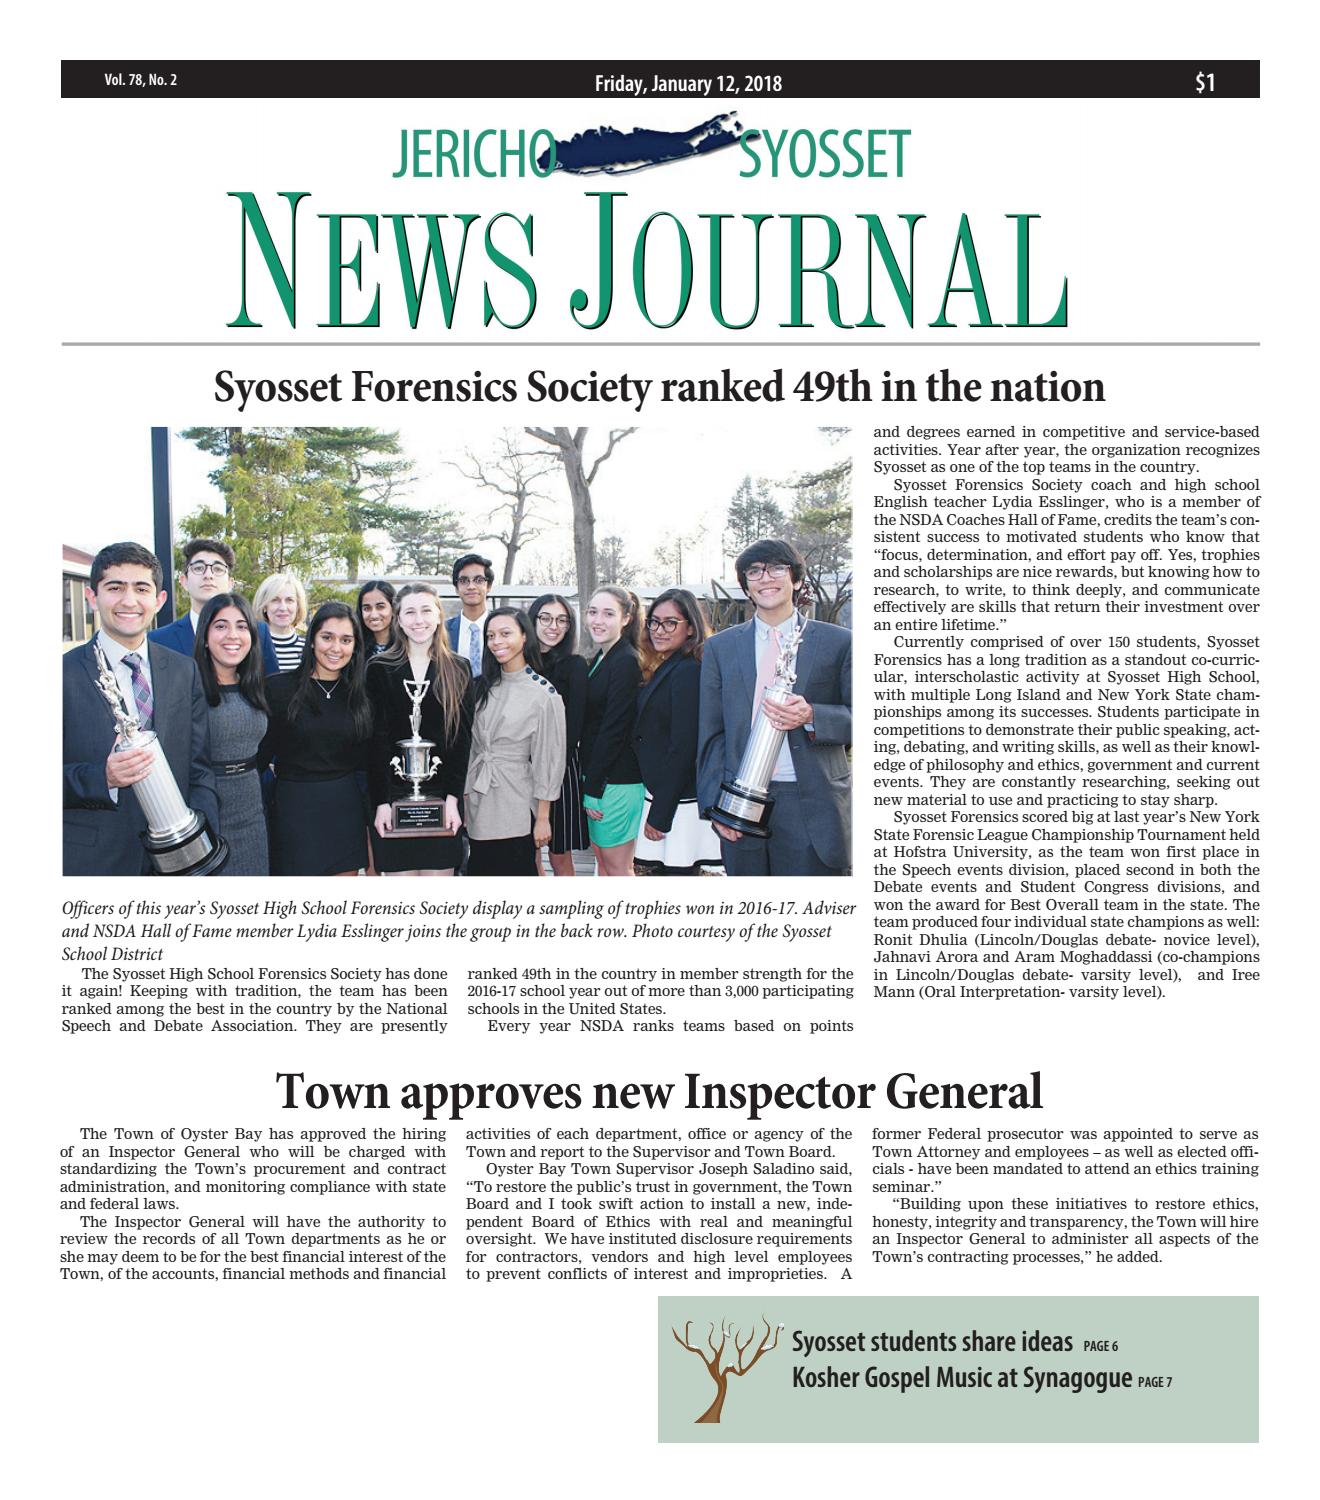 Jericho syosset news journal 11218 by litmor publishing issuu fandeluxe Choice Image